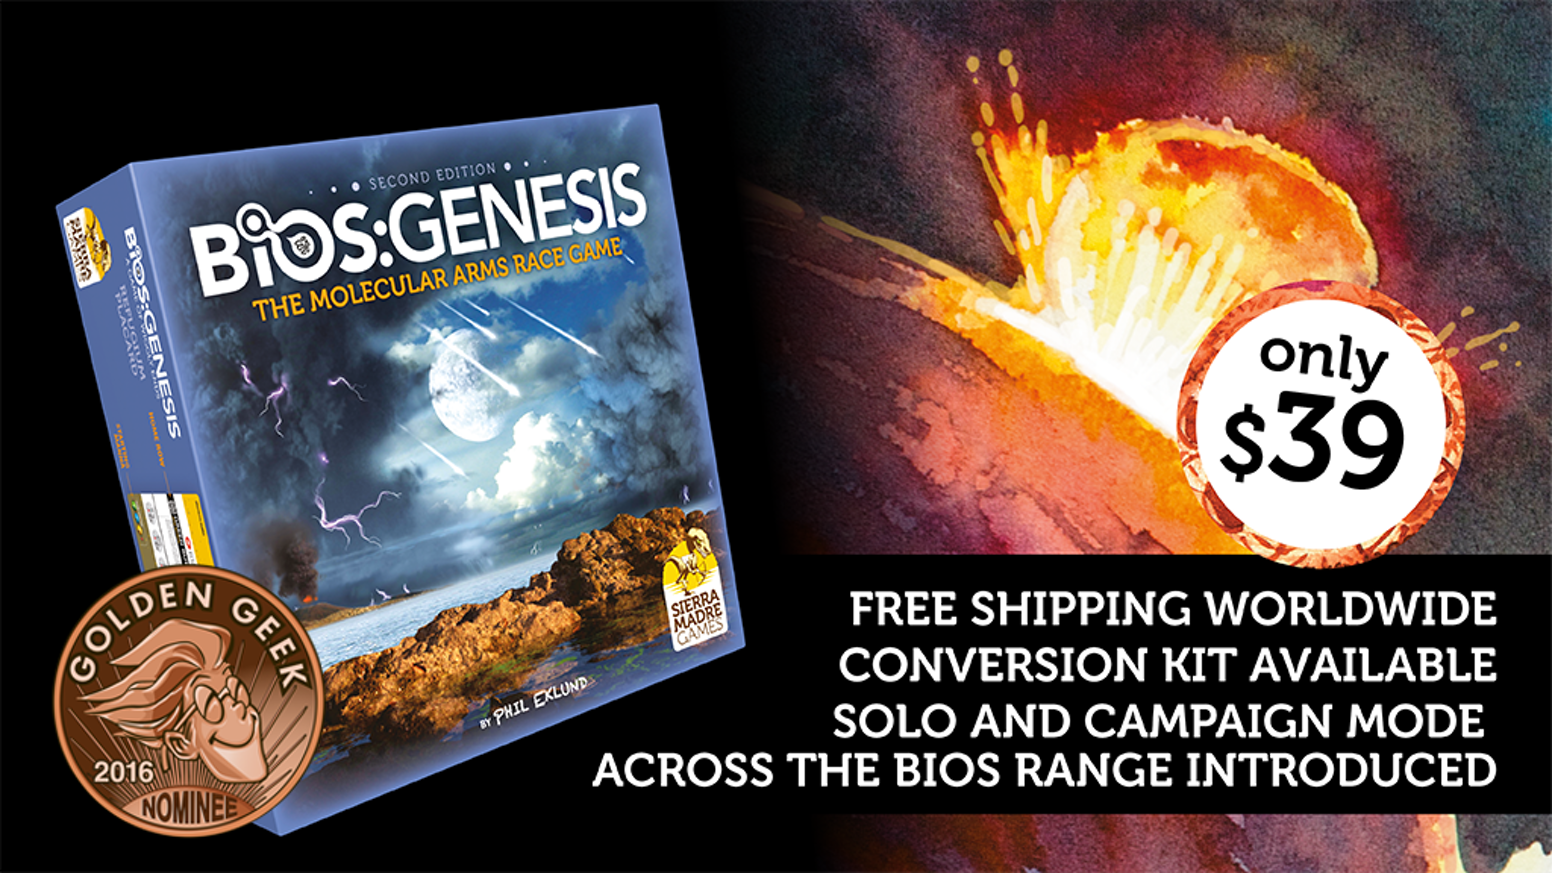 The origins of life game, Bios Genesis is back! Legendary designer Phil Eklund returns with a second edition of his hit: Bios Genesis!